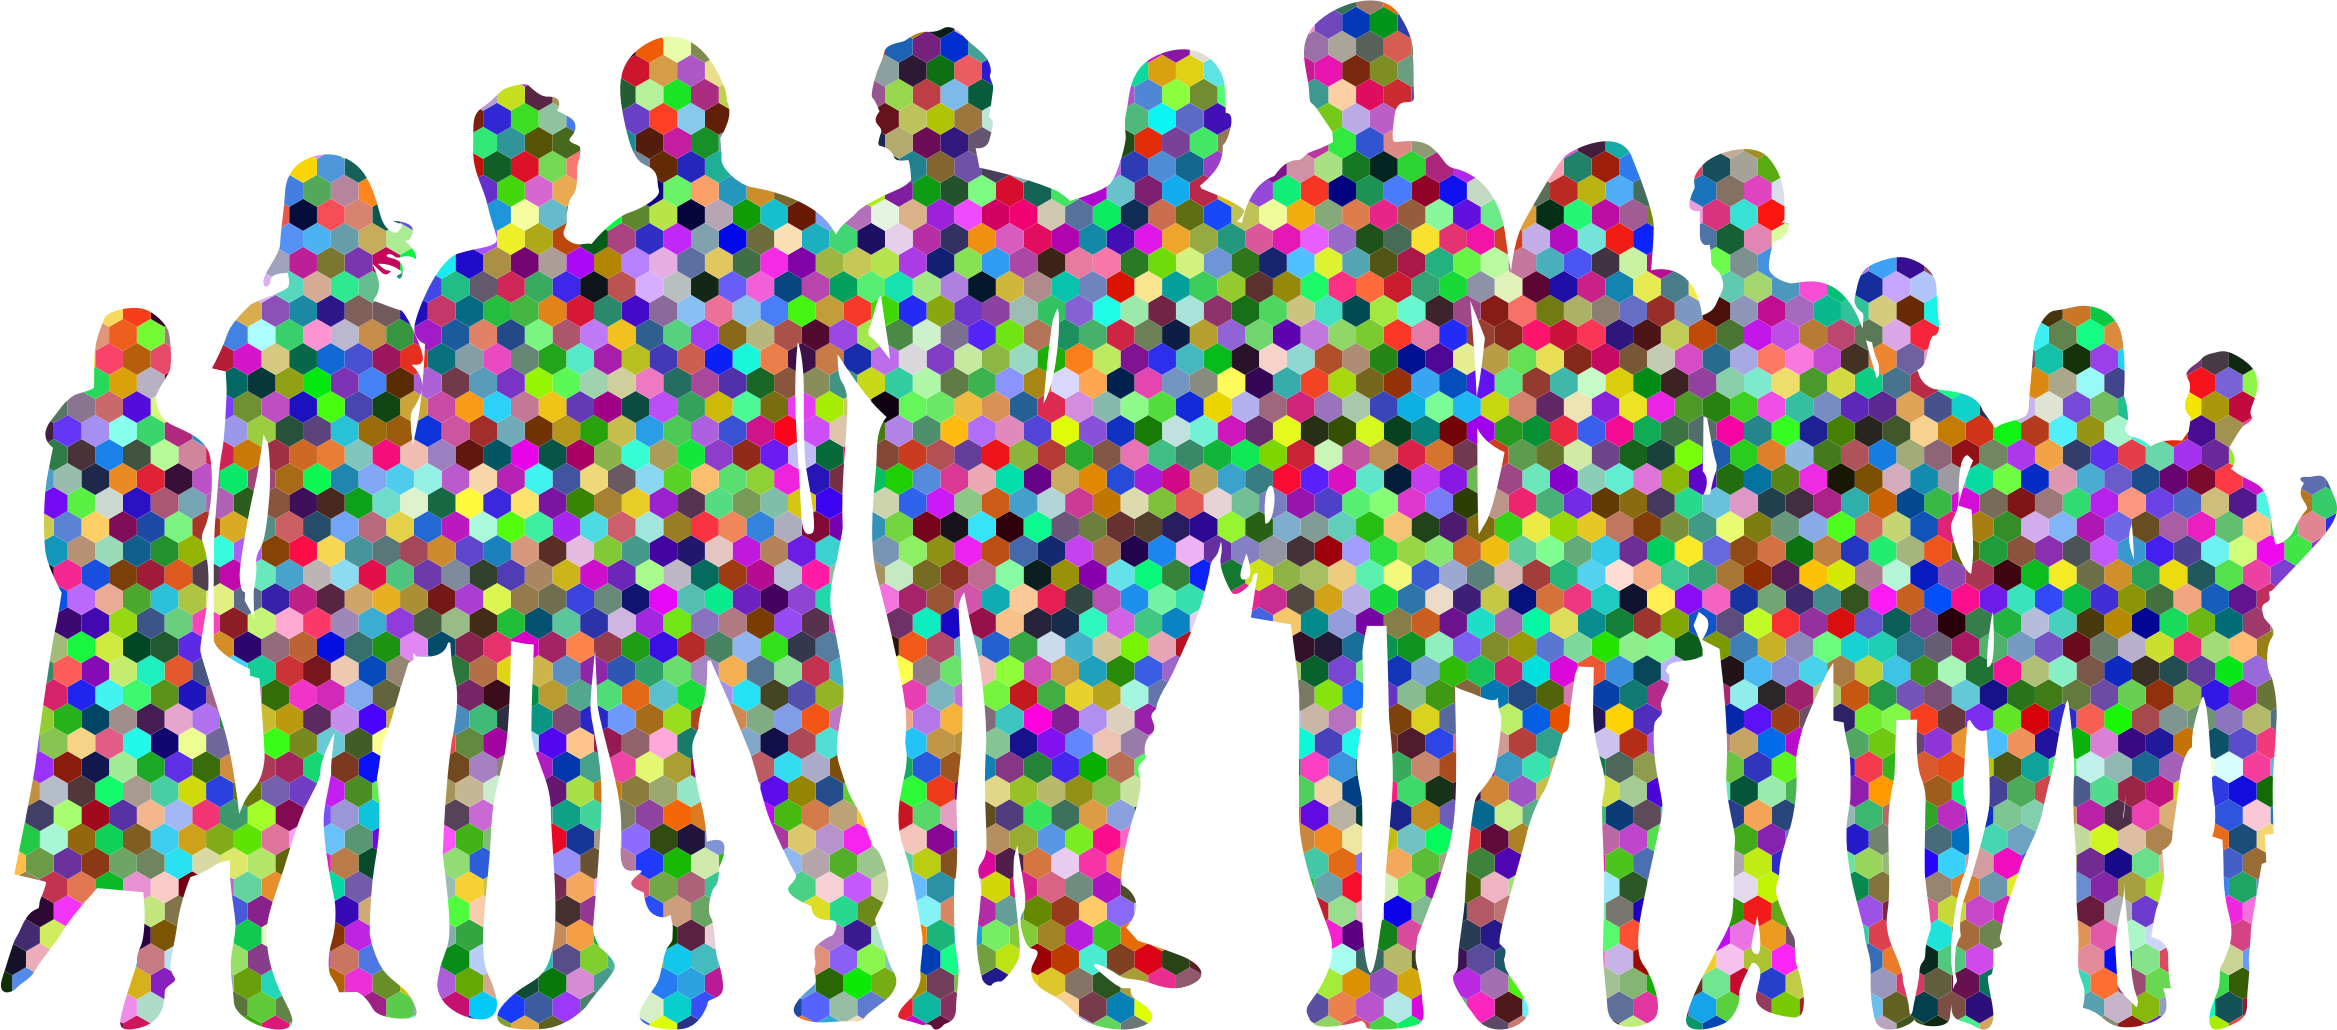 Human clipart human family. Prismatic hexagonal icons png